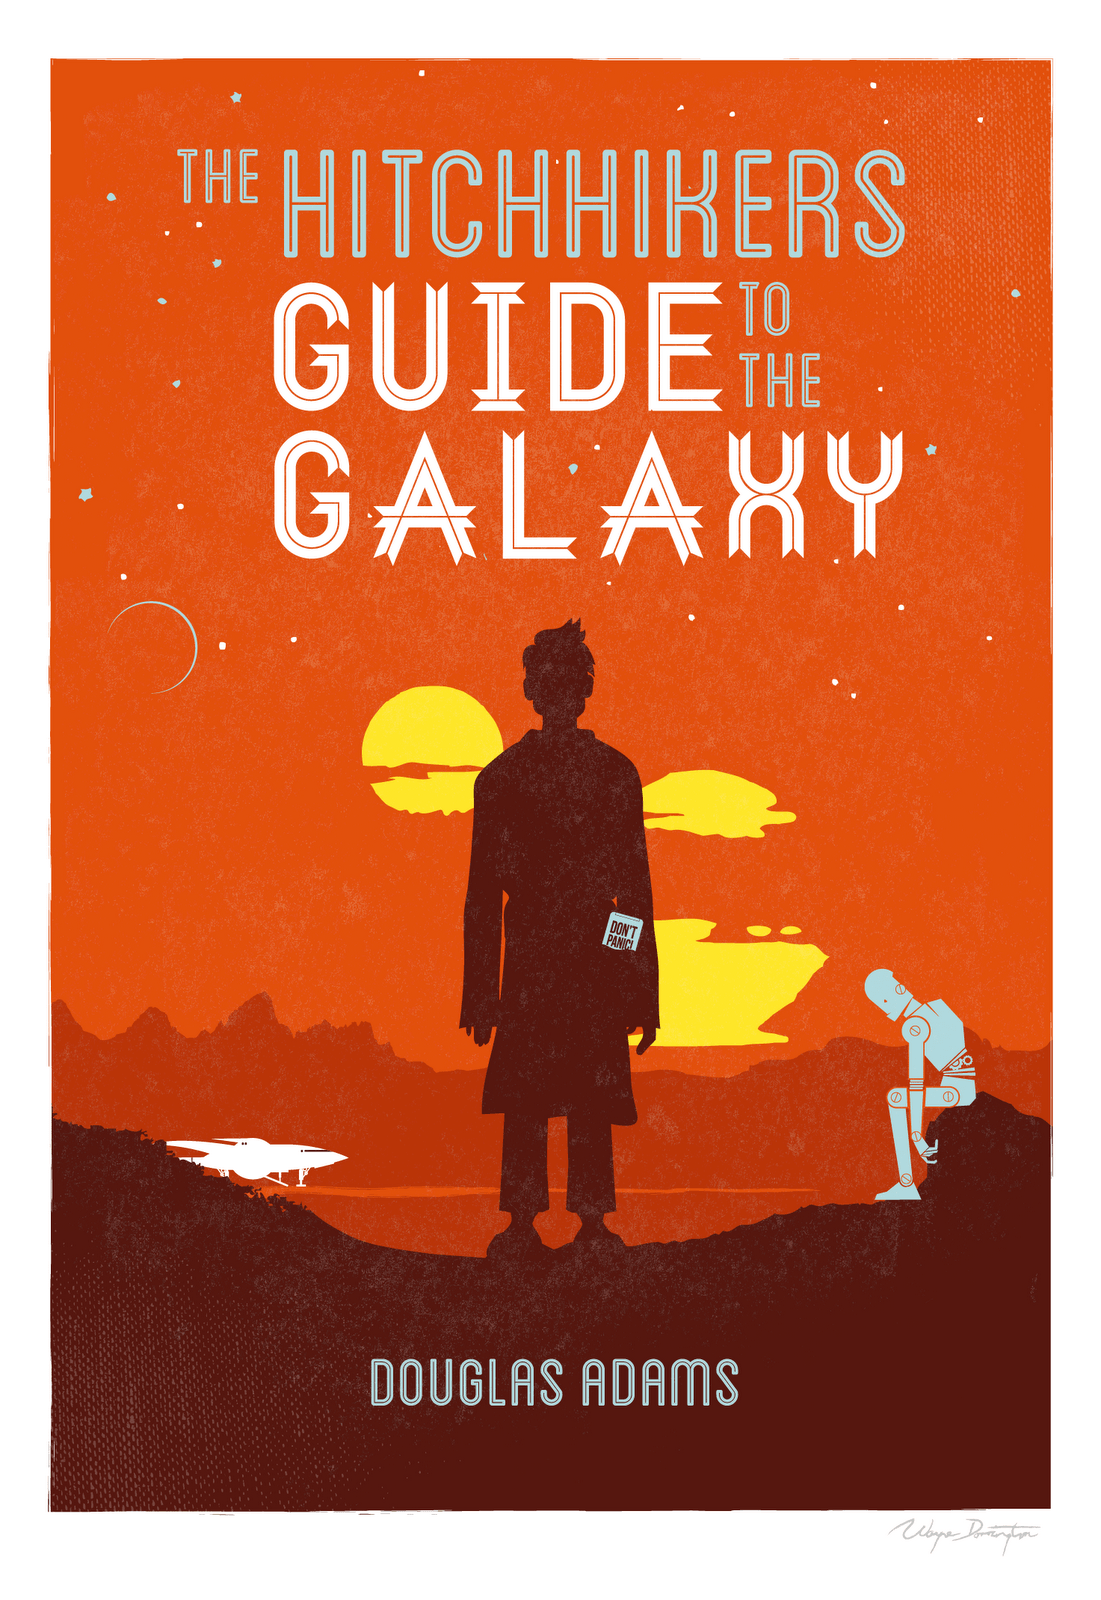 The Hitchhikers Guide to the Galaxy – Douglas Adams